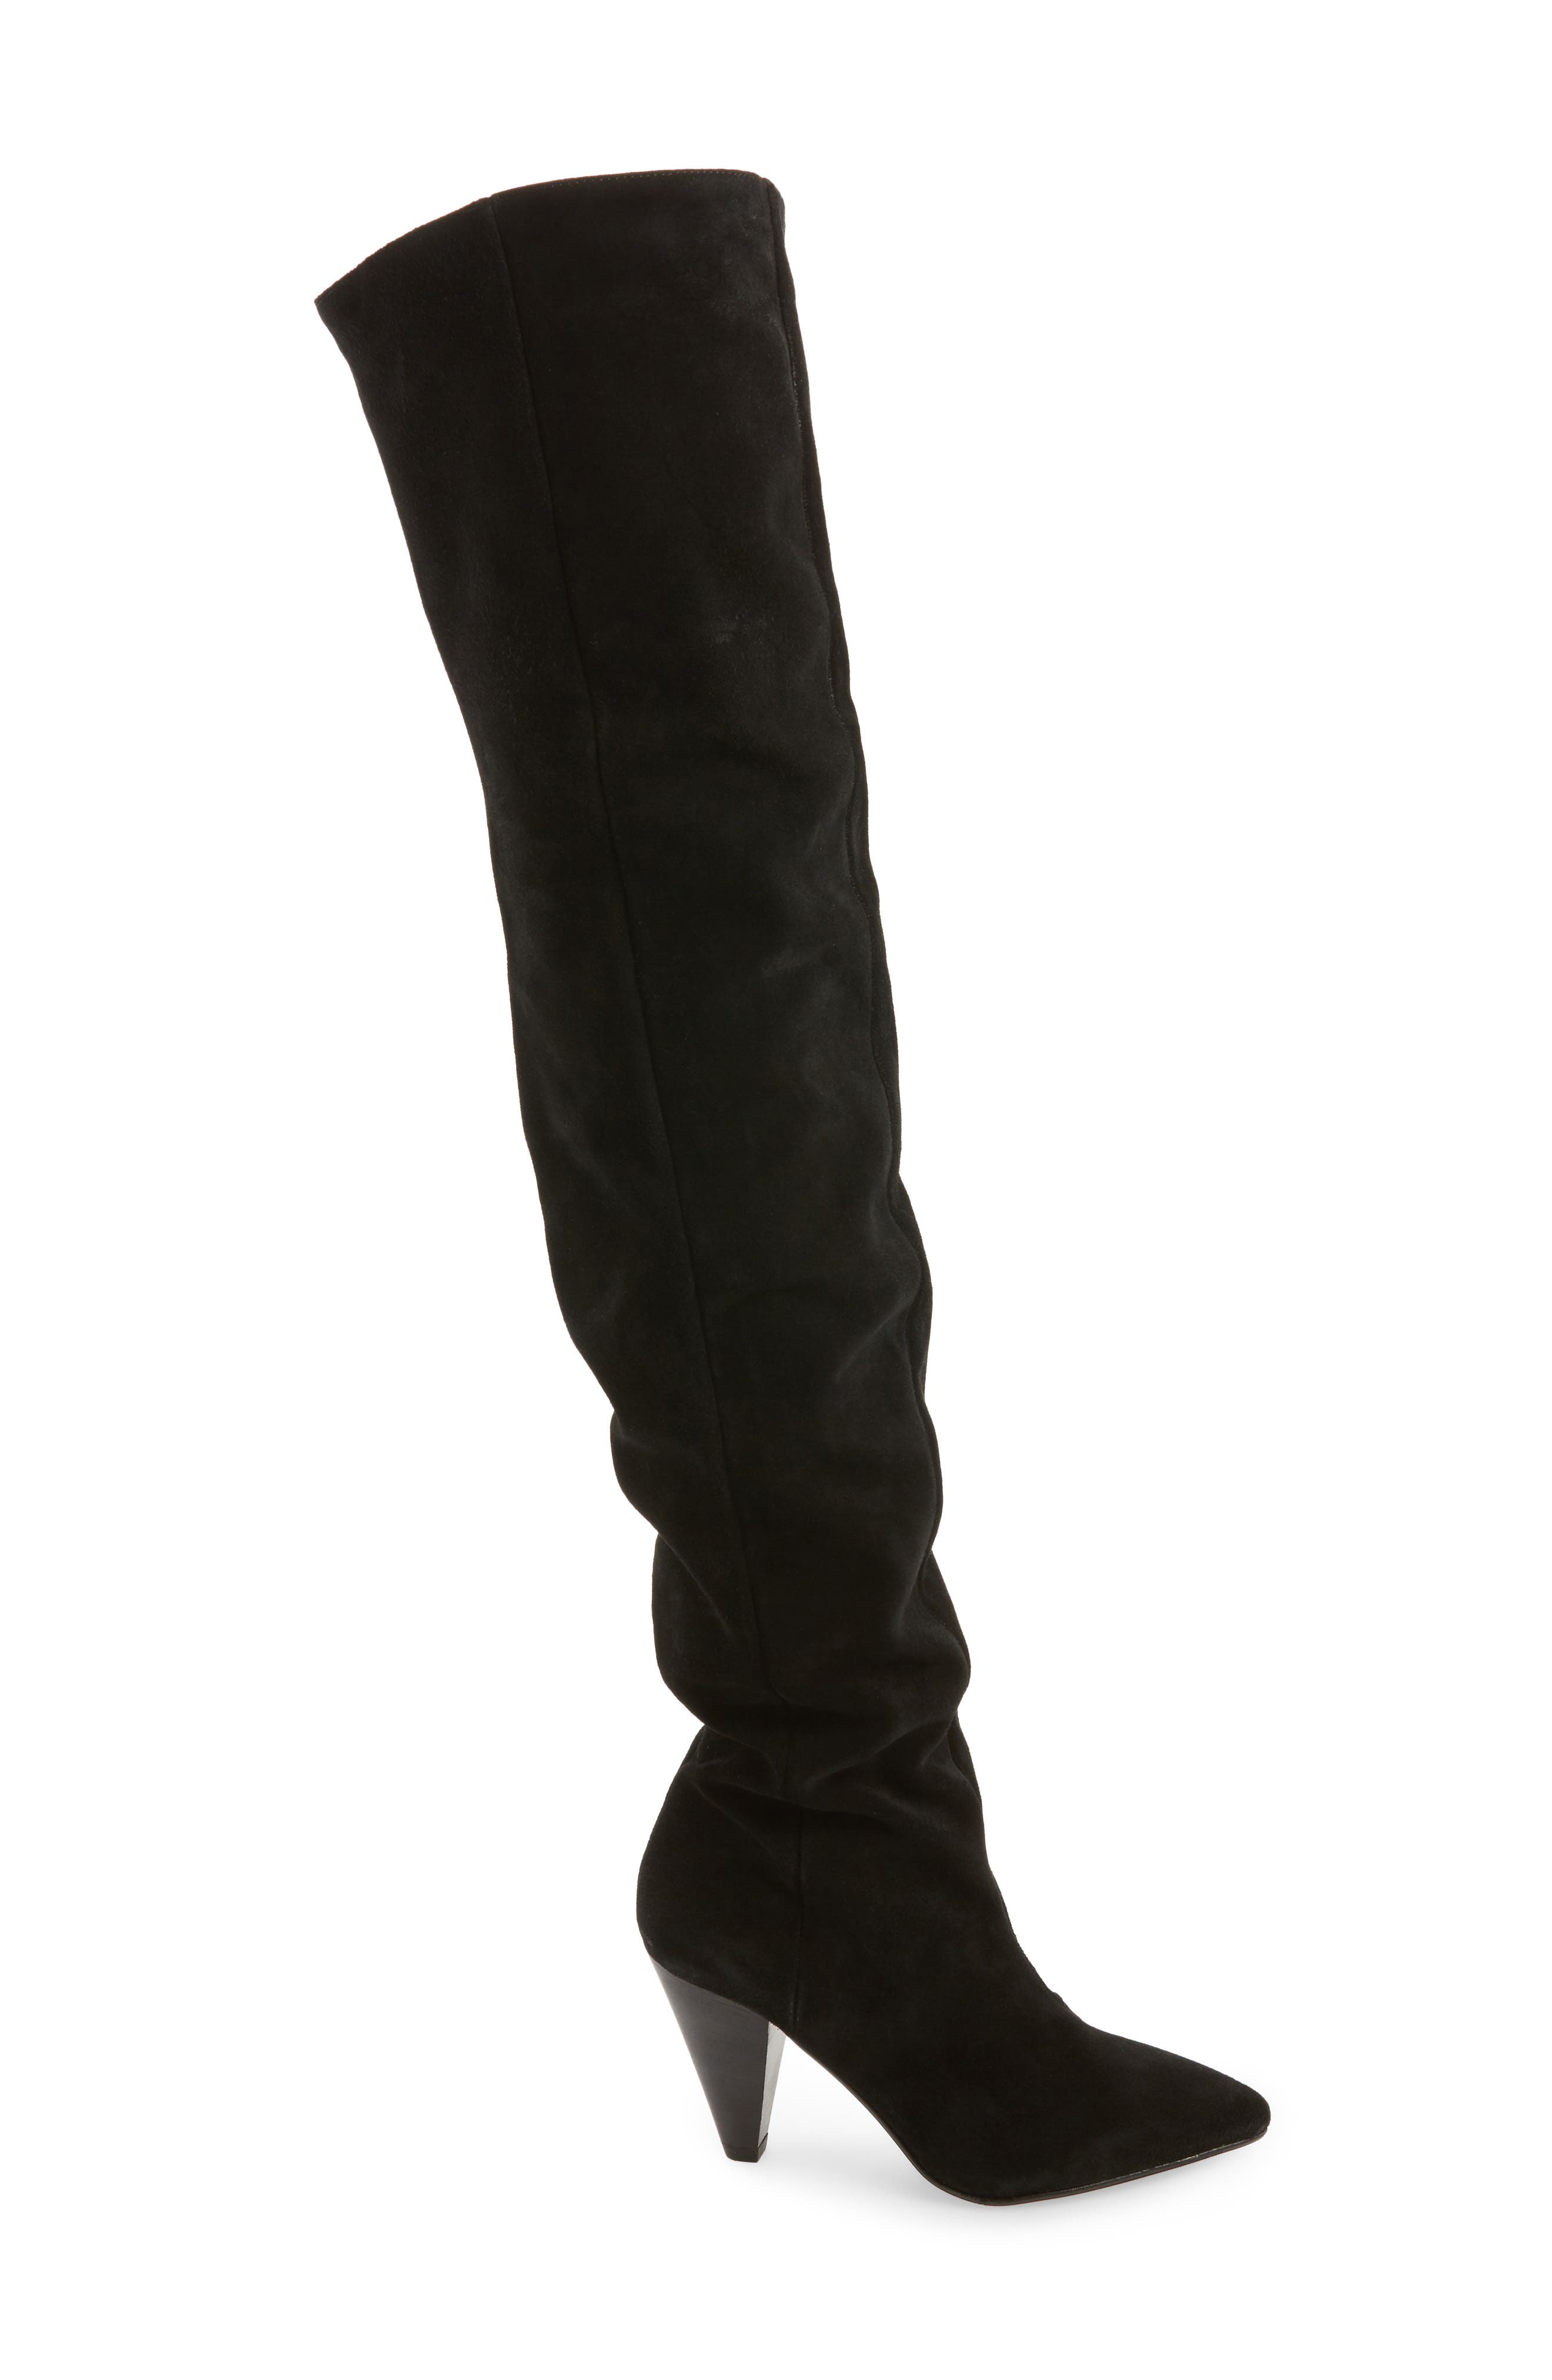 Boxer Thigh High Boots,                             Alternate thumbnail 3, color,                             001